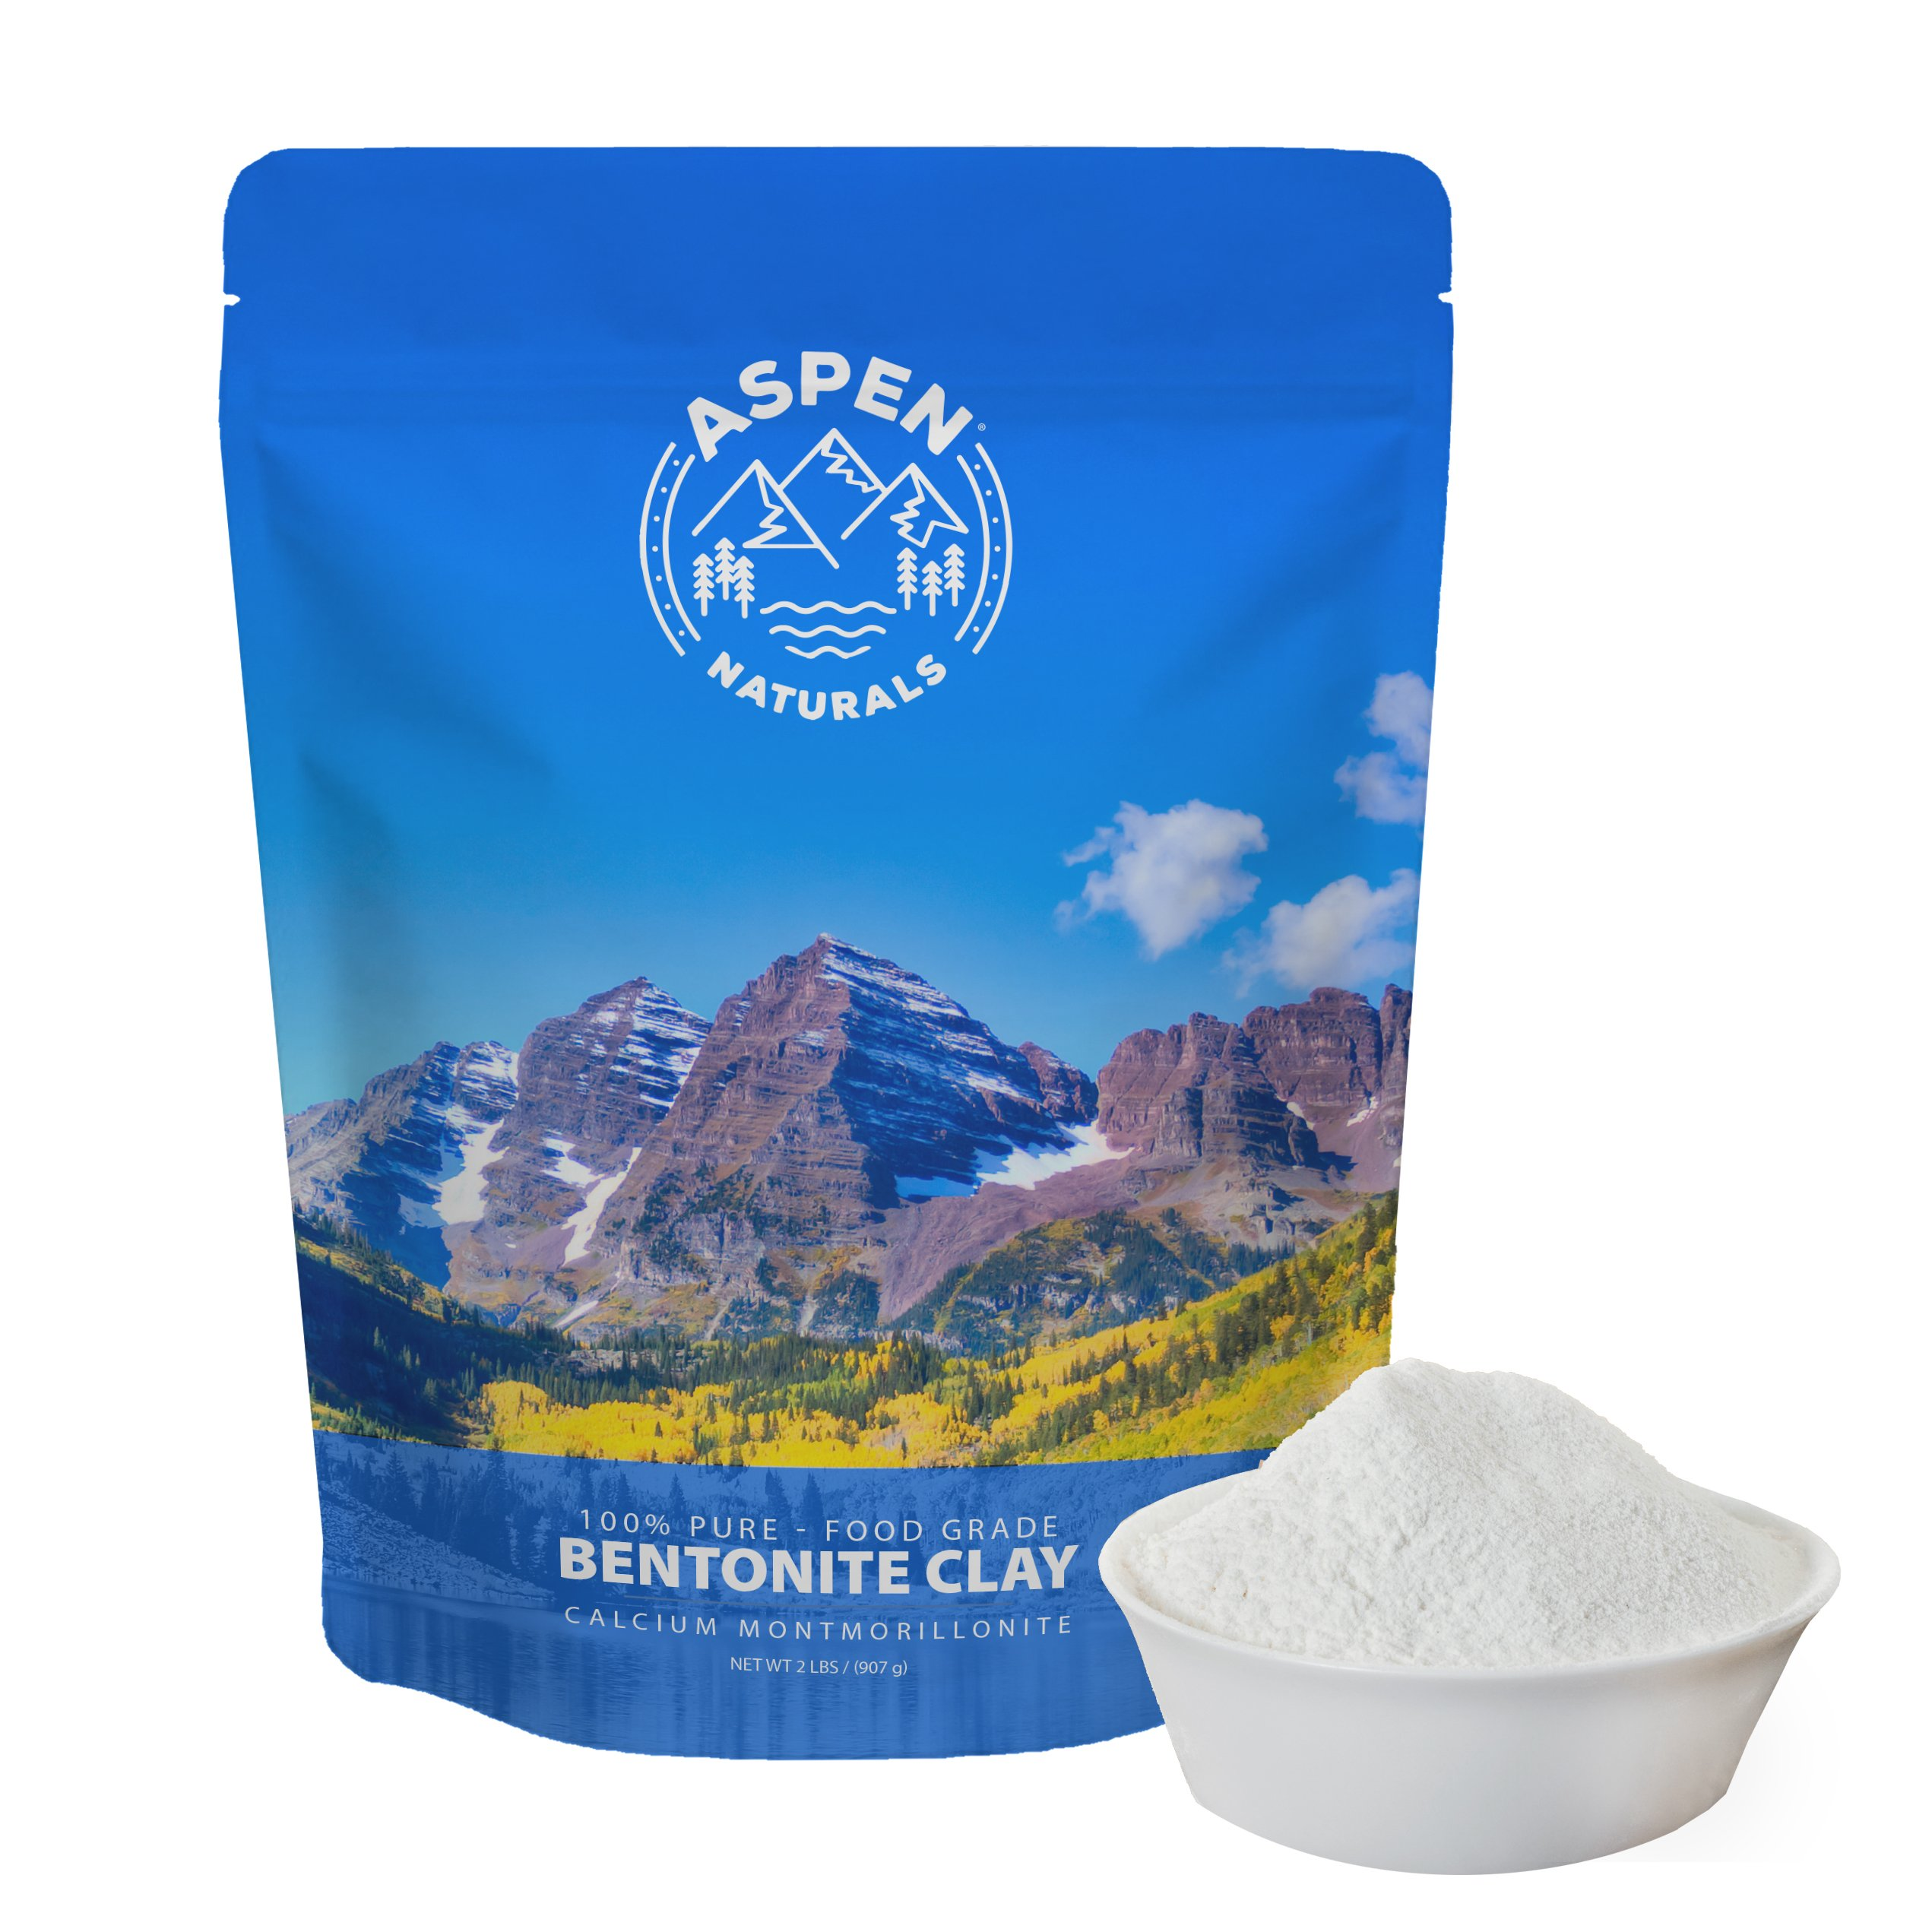 Food Grade Calcium Bentonite Clay - 2 LB Bentonite Montmorillonite Powder - Safe to Ingest for The Ultimate Internal Detox or Make a Clay Face Mask for The Best Natural Skin Healing Powder by Aspen Naturals® (Image #2)